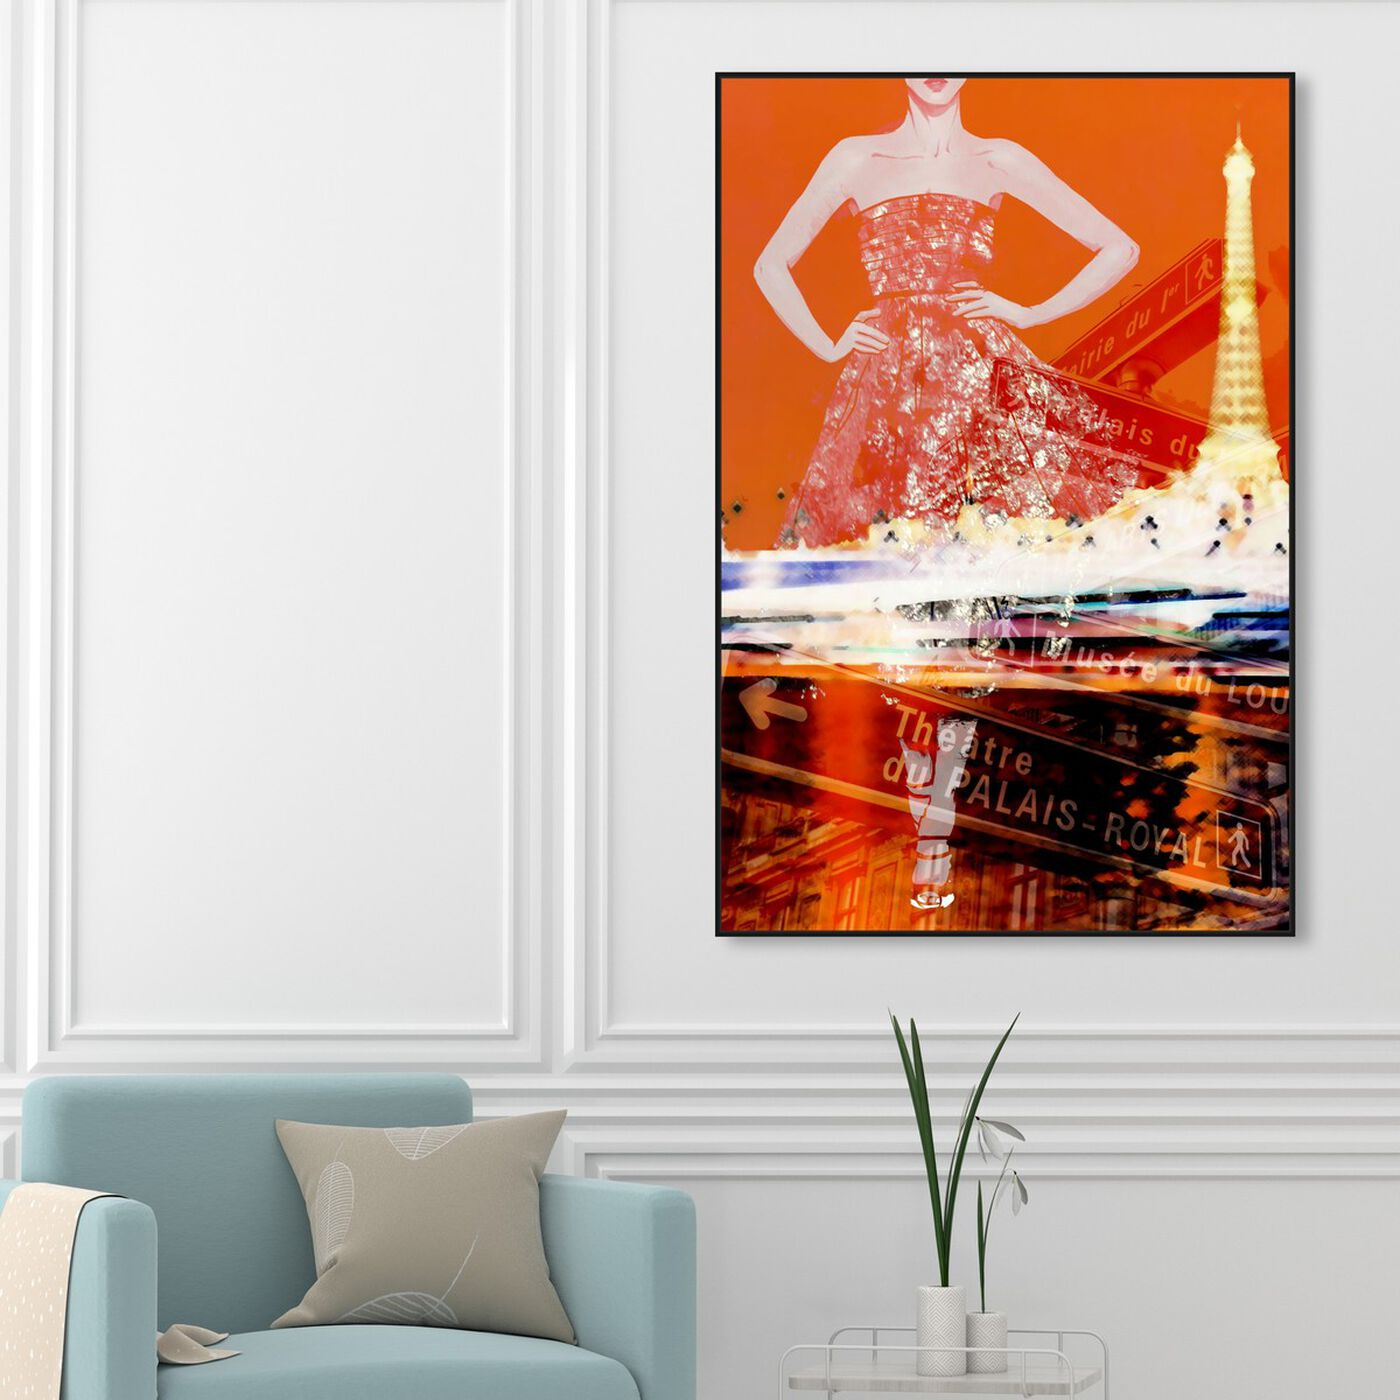 Hanging view of Paris Is My Runway featuring fashion and glam and dress art.